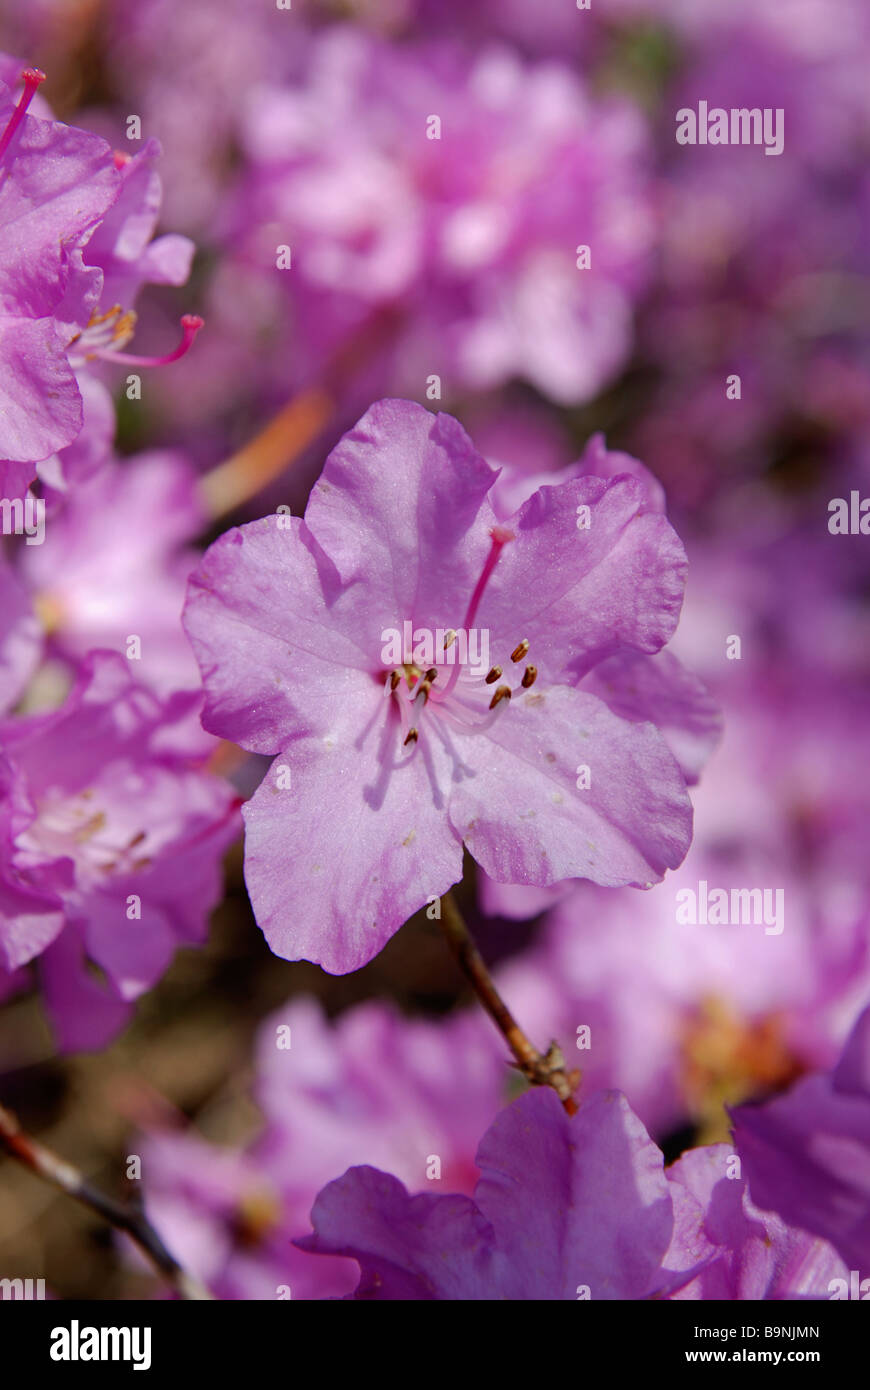 a rhododendron augustinii in full flower Stock Photo